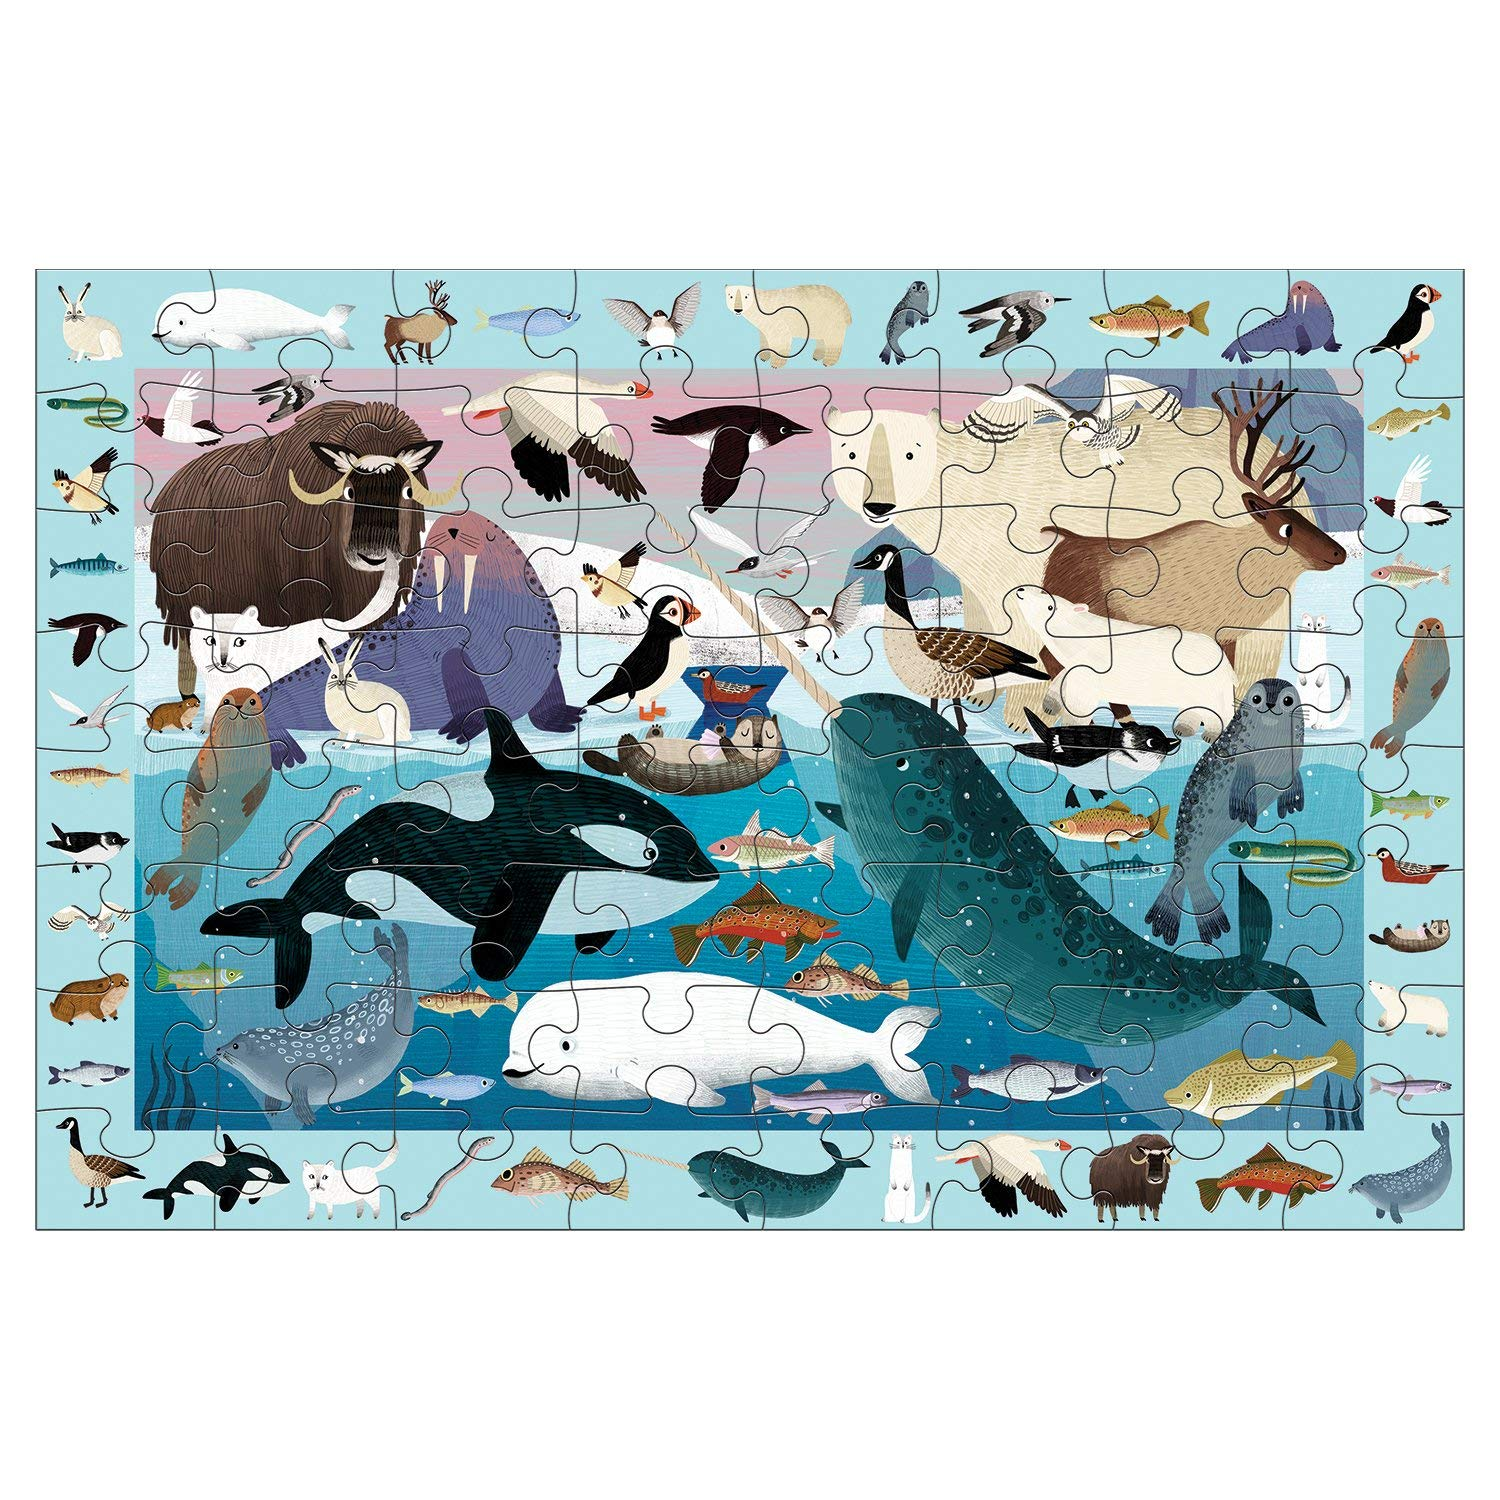 MUDPUPPY - Search and Find 64 Piece Arctic Life Jigsaw Puzzle